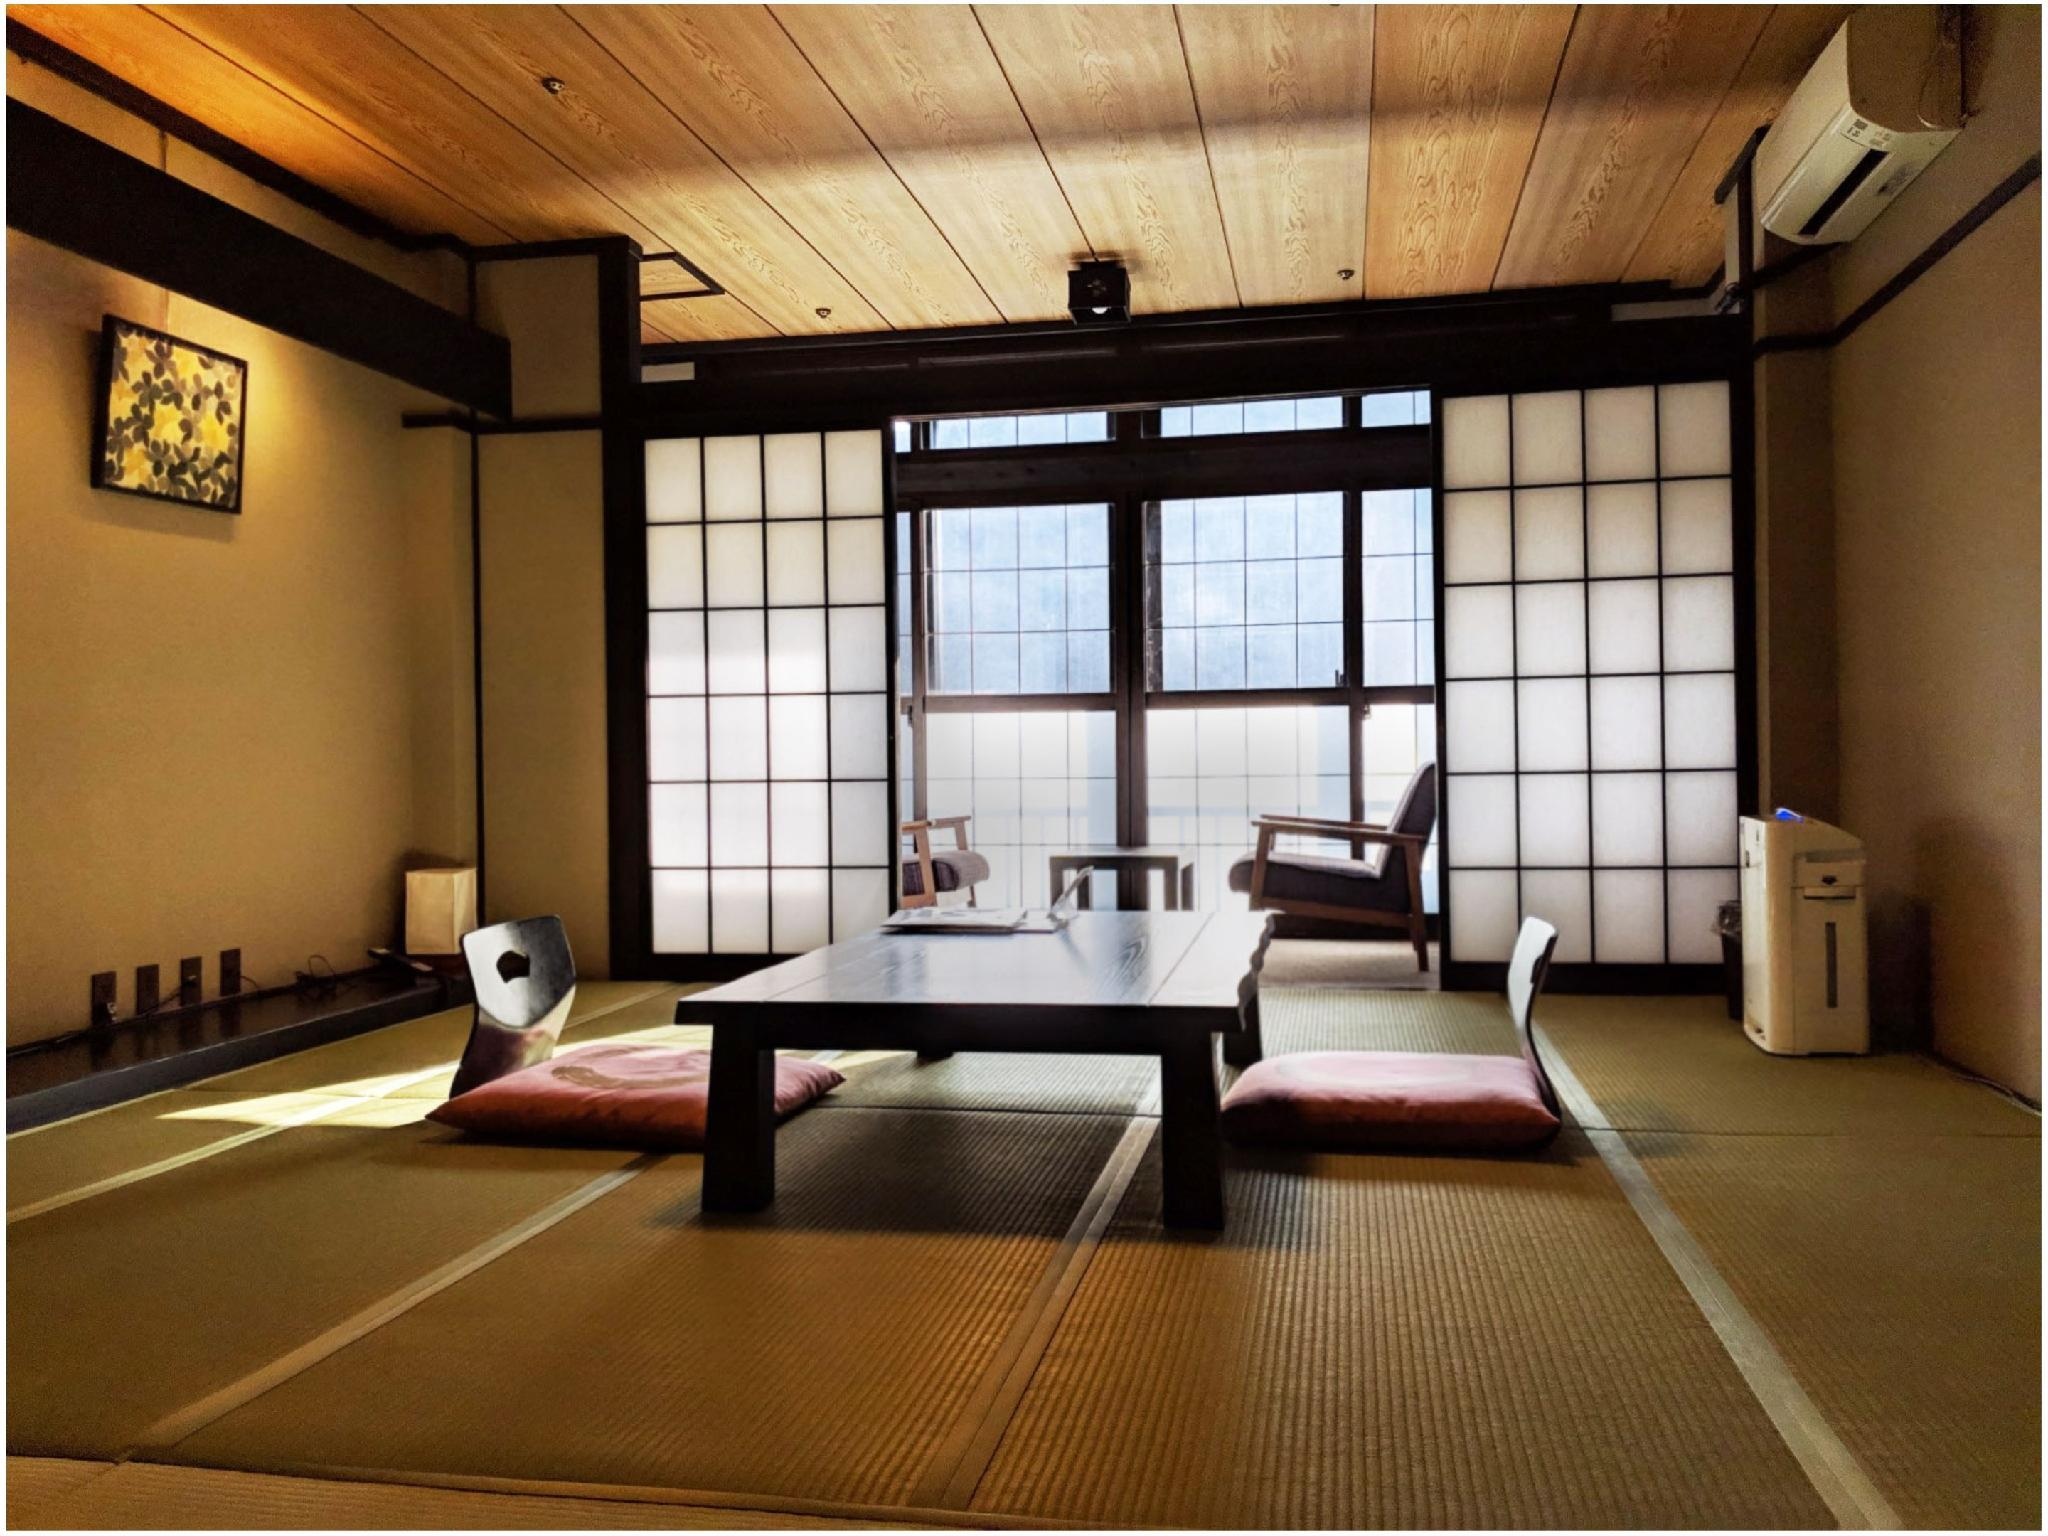 고민가풍 다다미 객실 (Traditional Japanese-style Room)